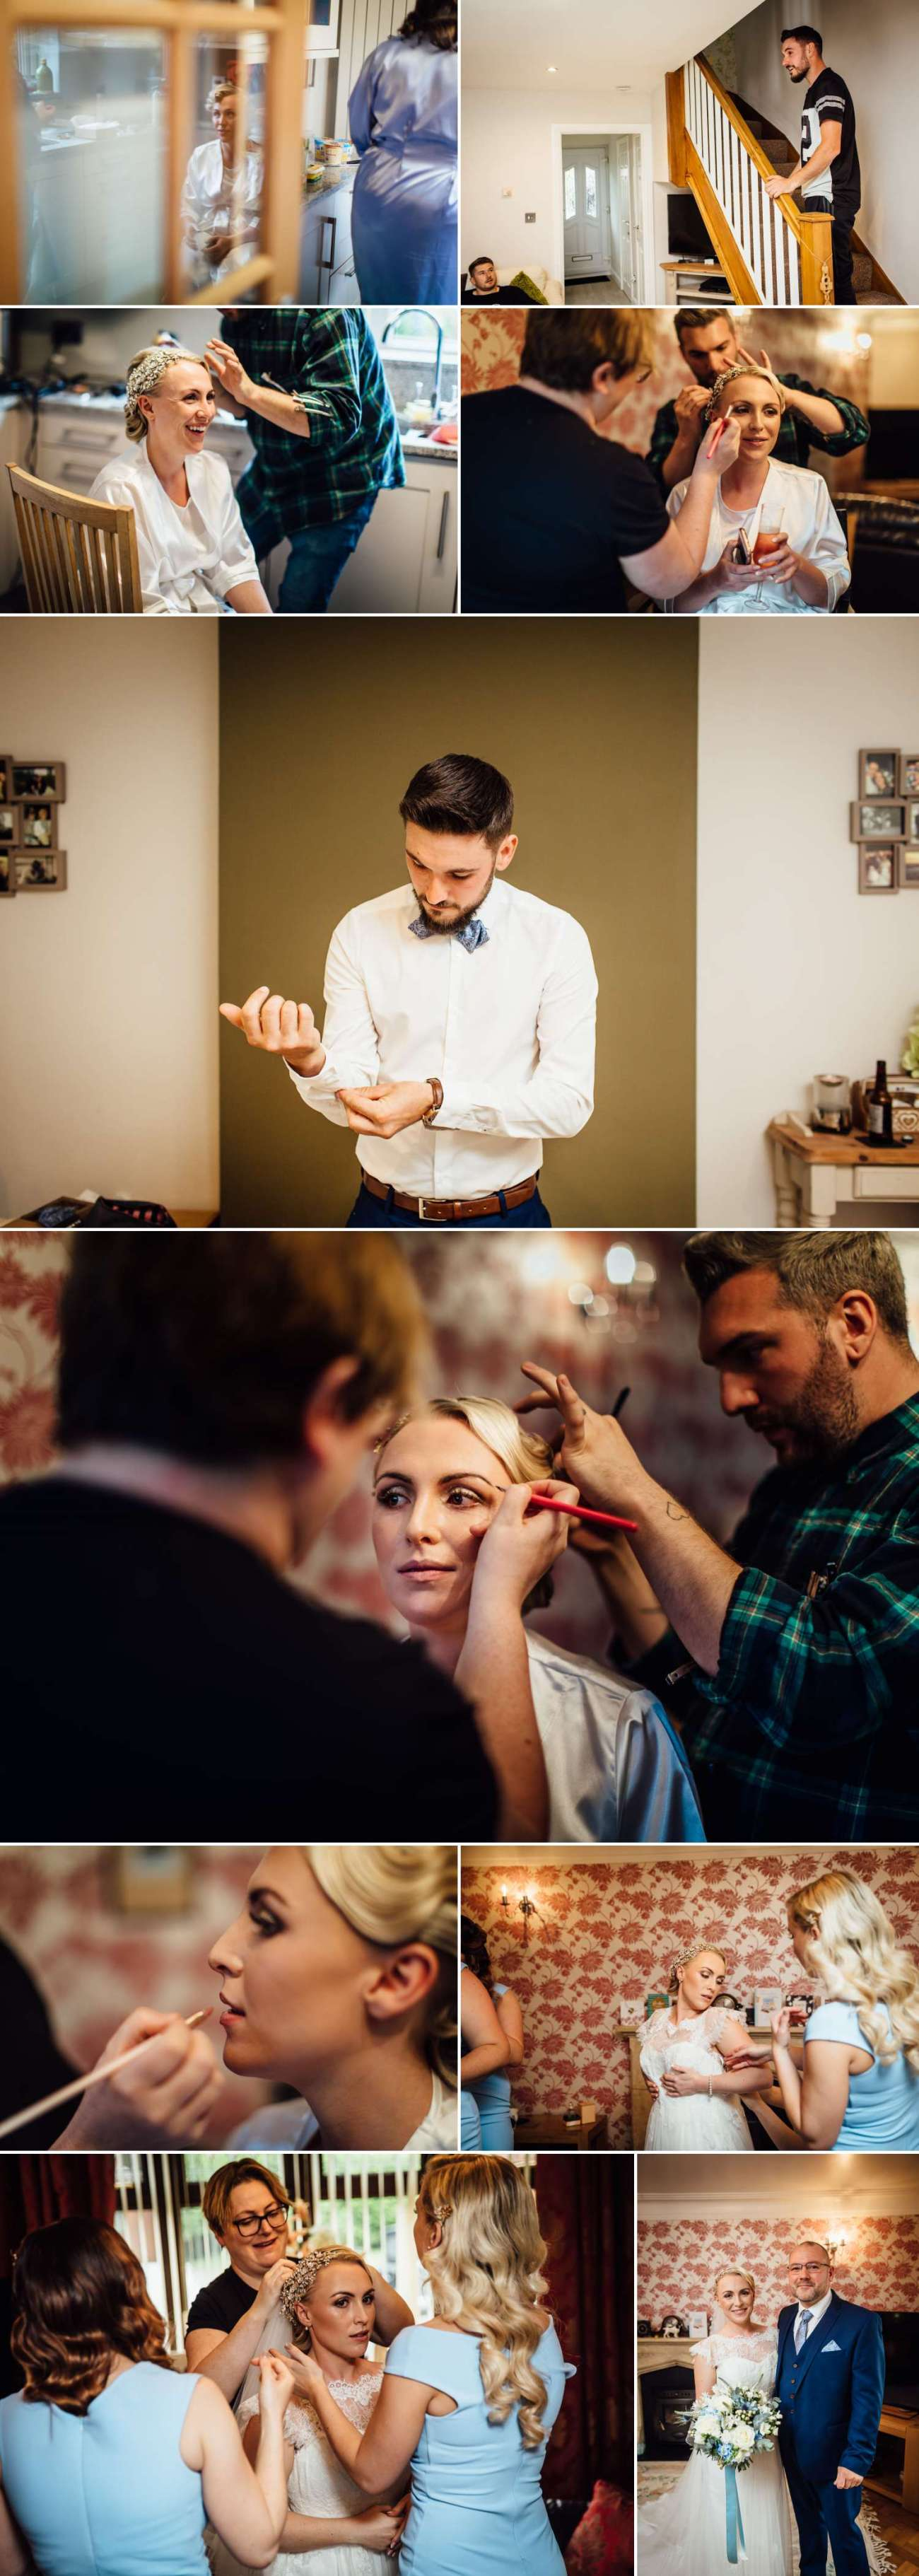 Wedding Photographs of Groom getting ready